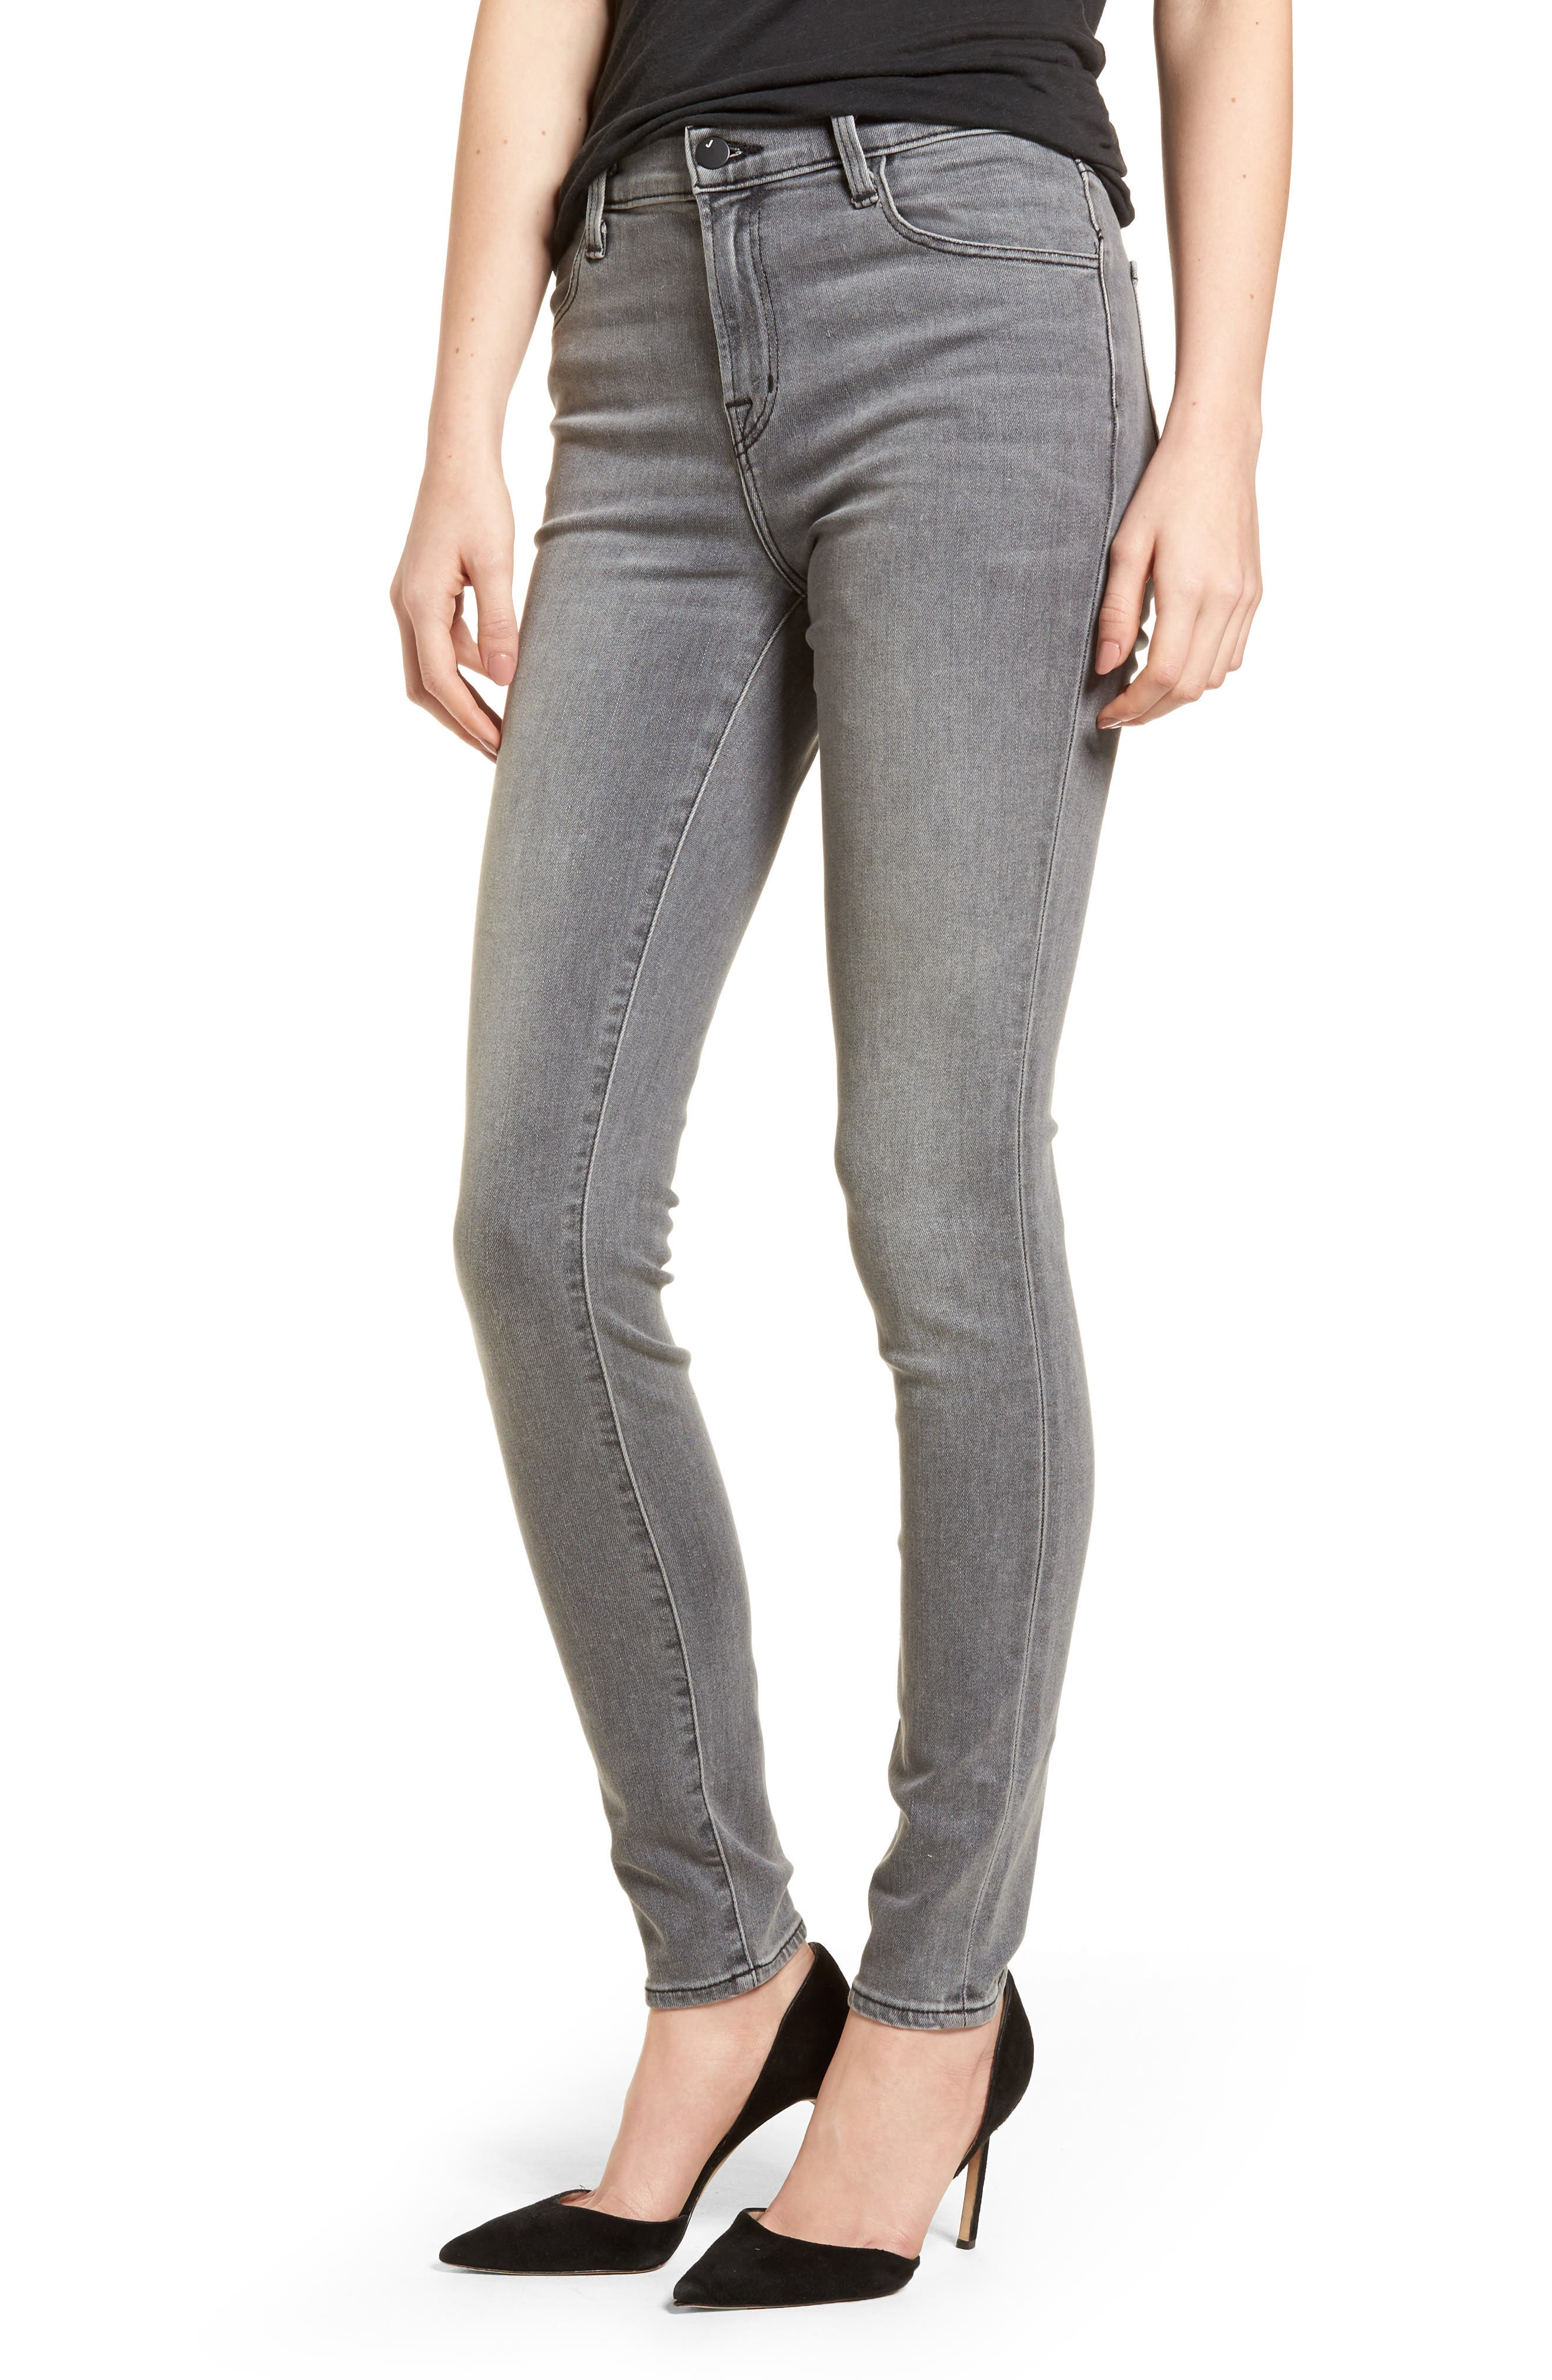 Main Image - J Brand Maria High Waist Skinny Jeans (Pebble) (Nordstrom Exclusive)